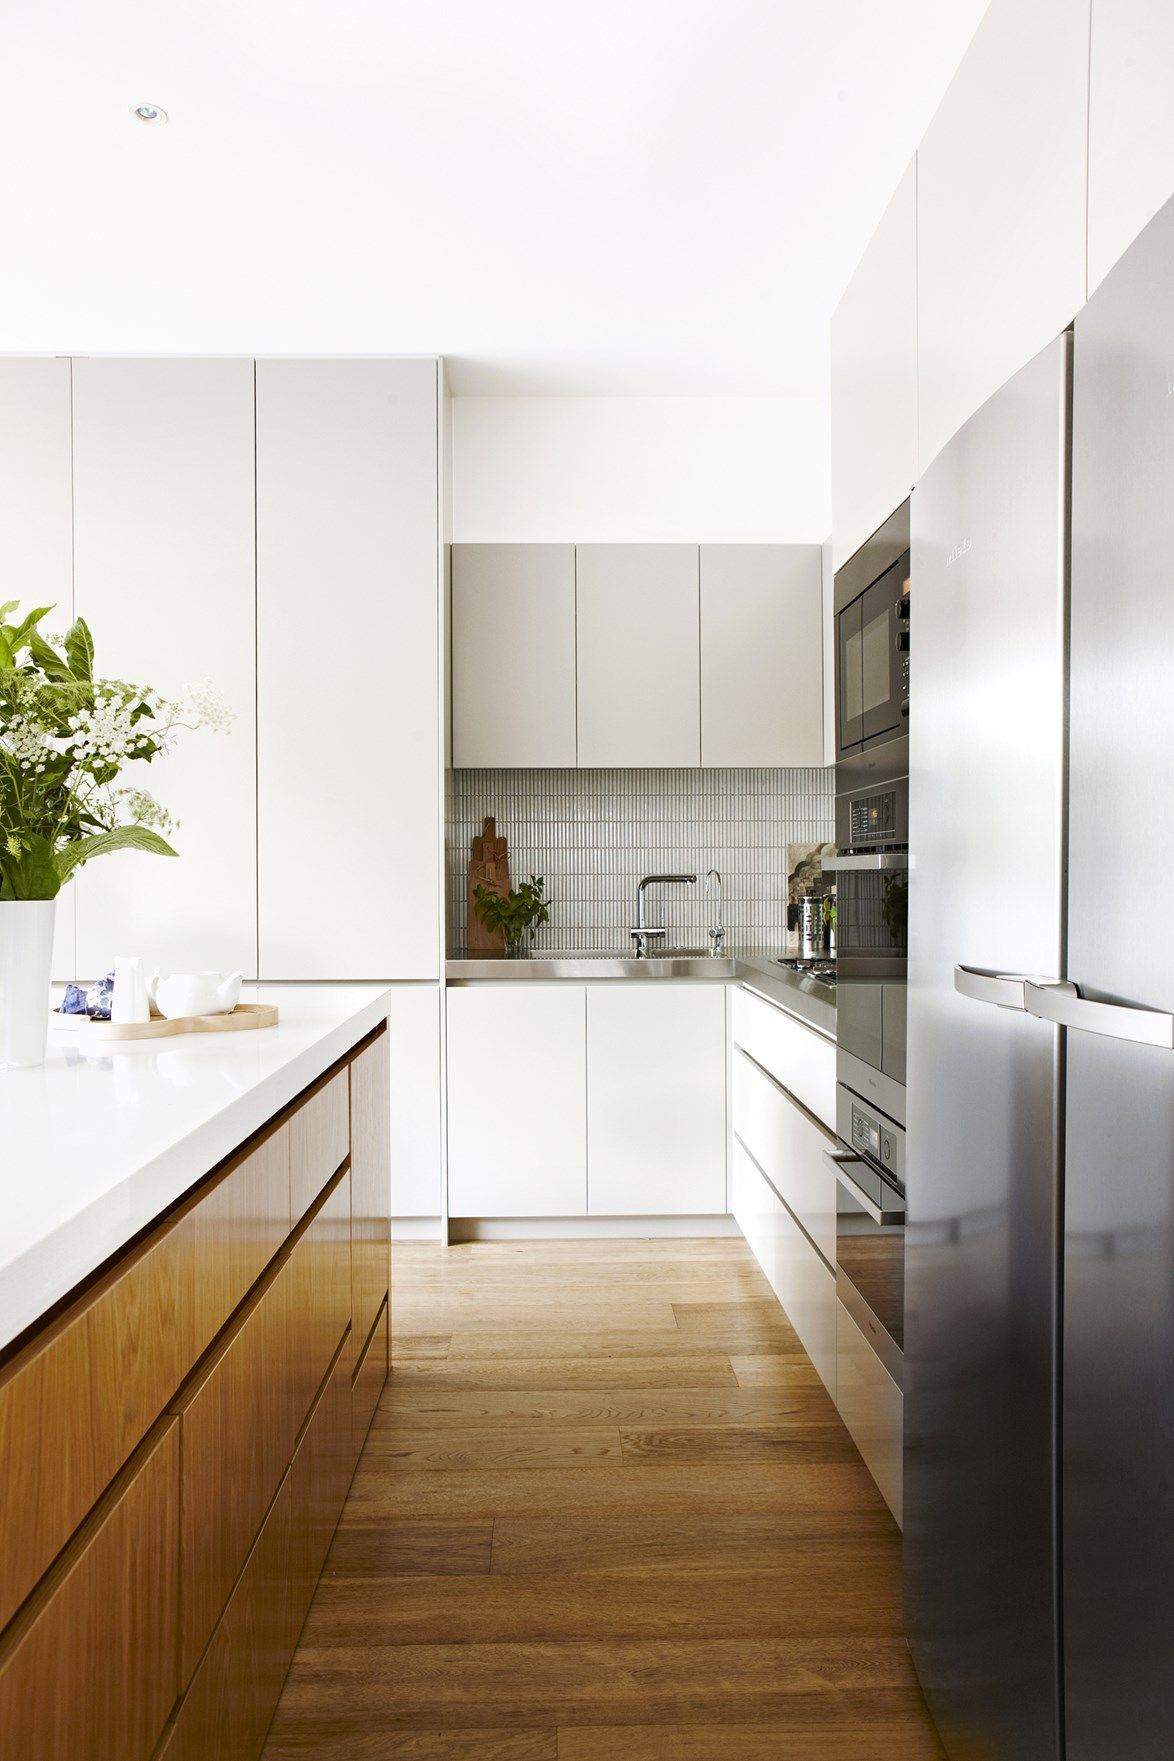 Modern Kitchen Cabinet Doors Inspirational Kitchen Cabinet Door Styles 8 Of the Most Popular Ideas to